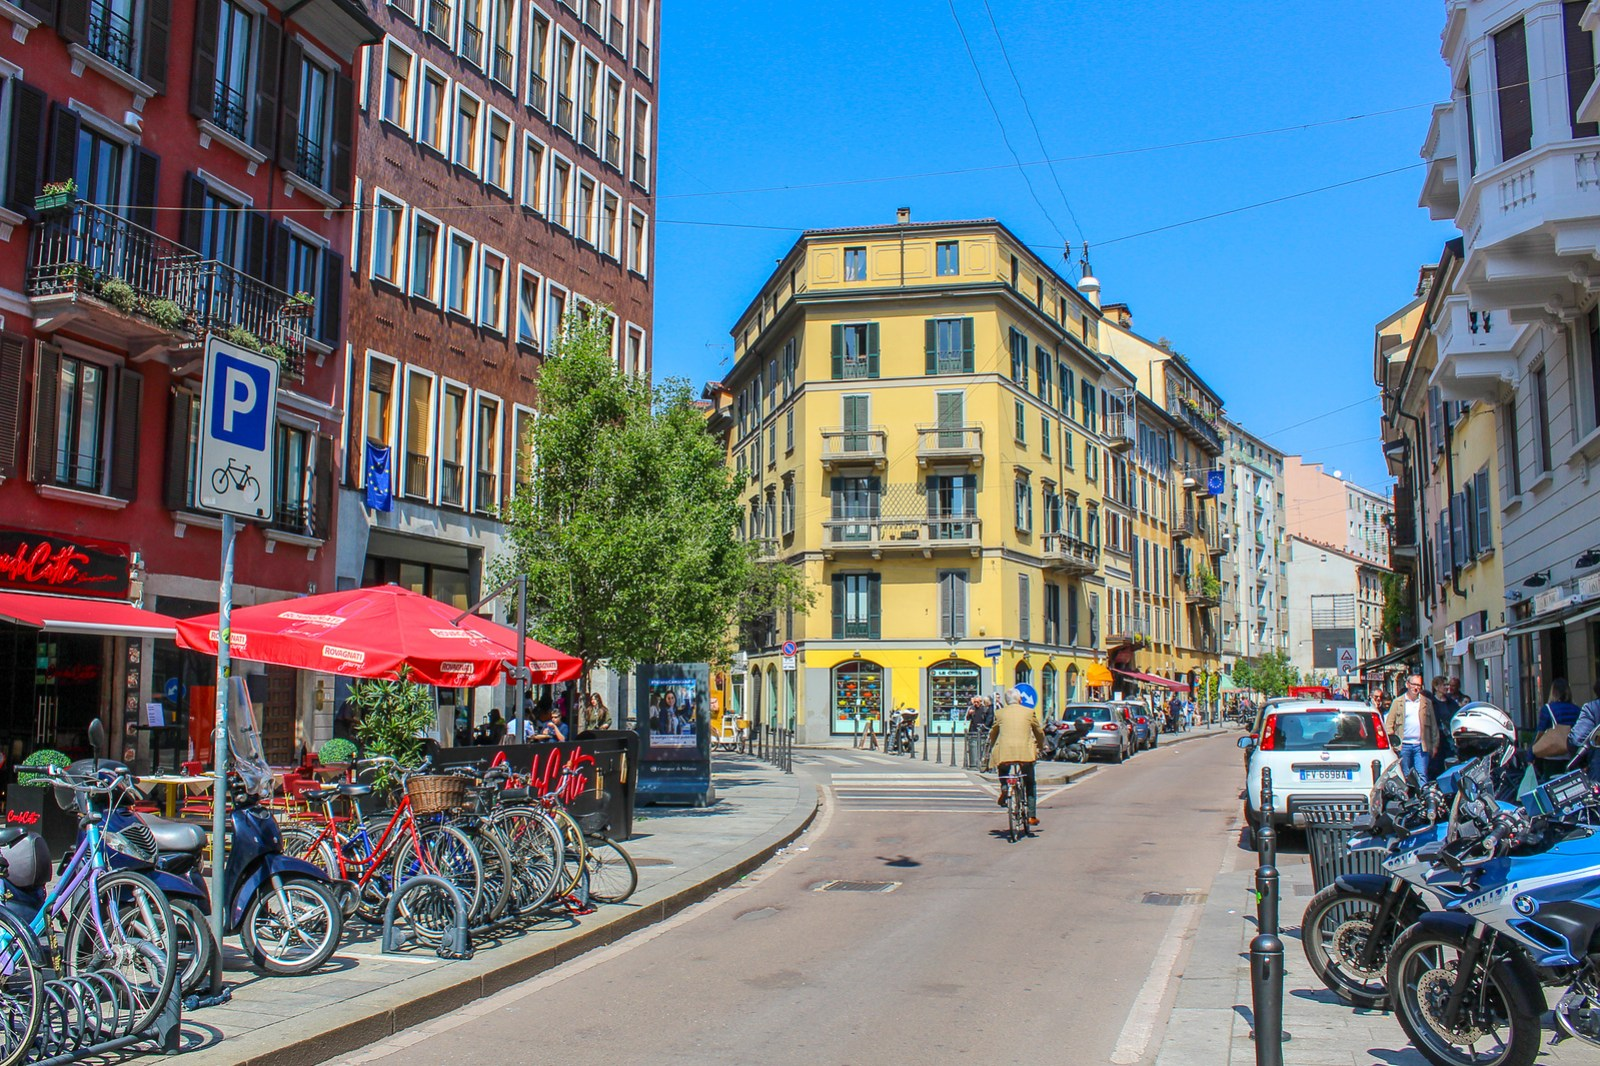 why visit milan? all the cool neighborhoods